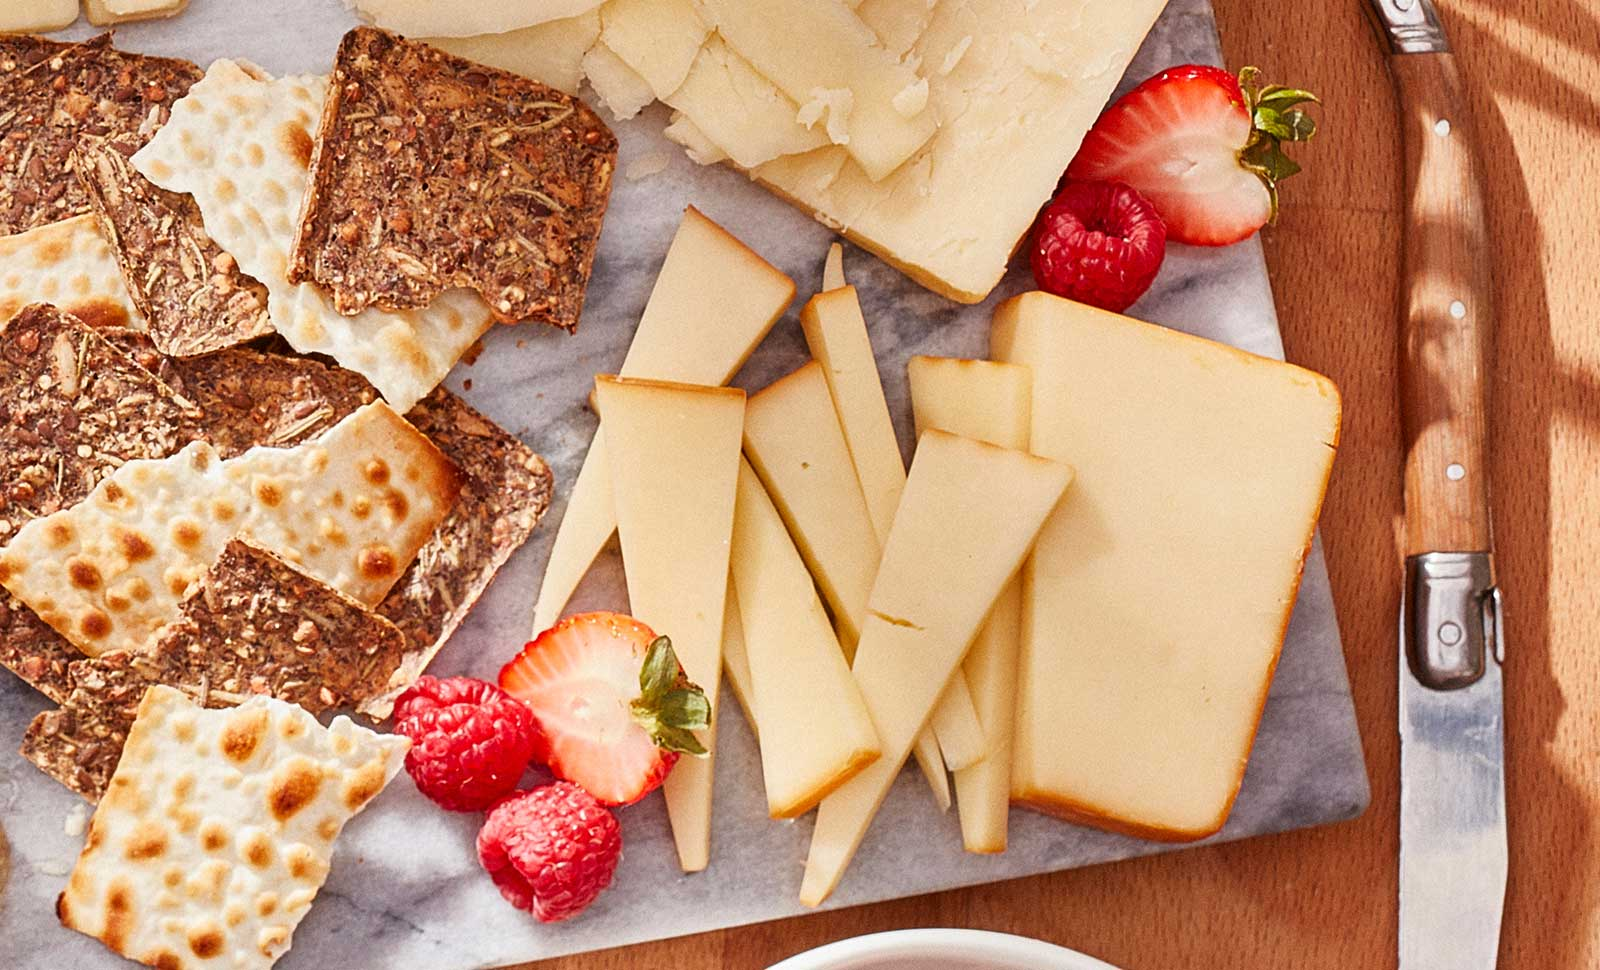 Eight pieces of naturally smoked gouda cheese served on a plate with multigrain crackers.